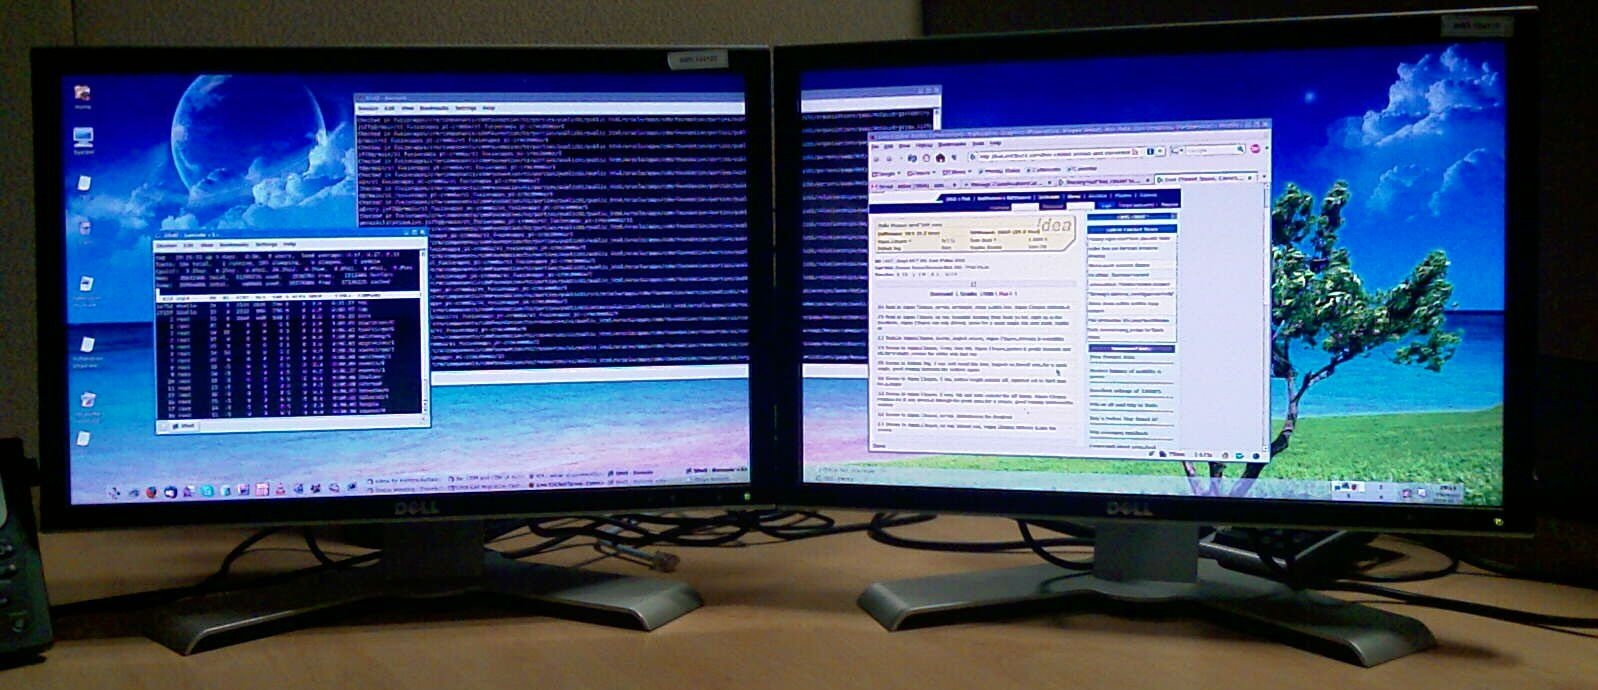 How To Set Different Wallpapers On A Dual Monitor Setup On Windows 10 1598x690